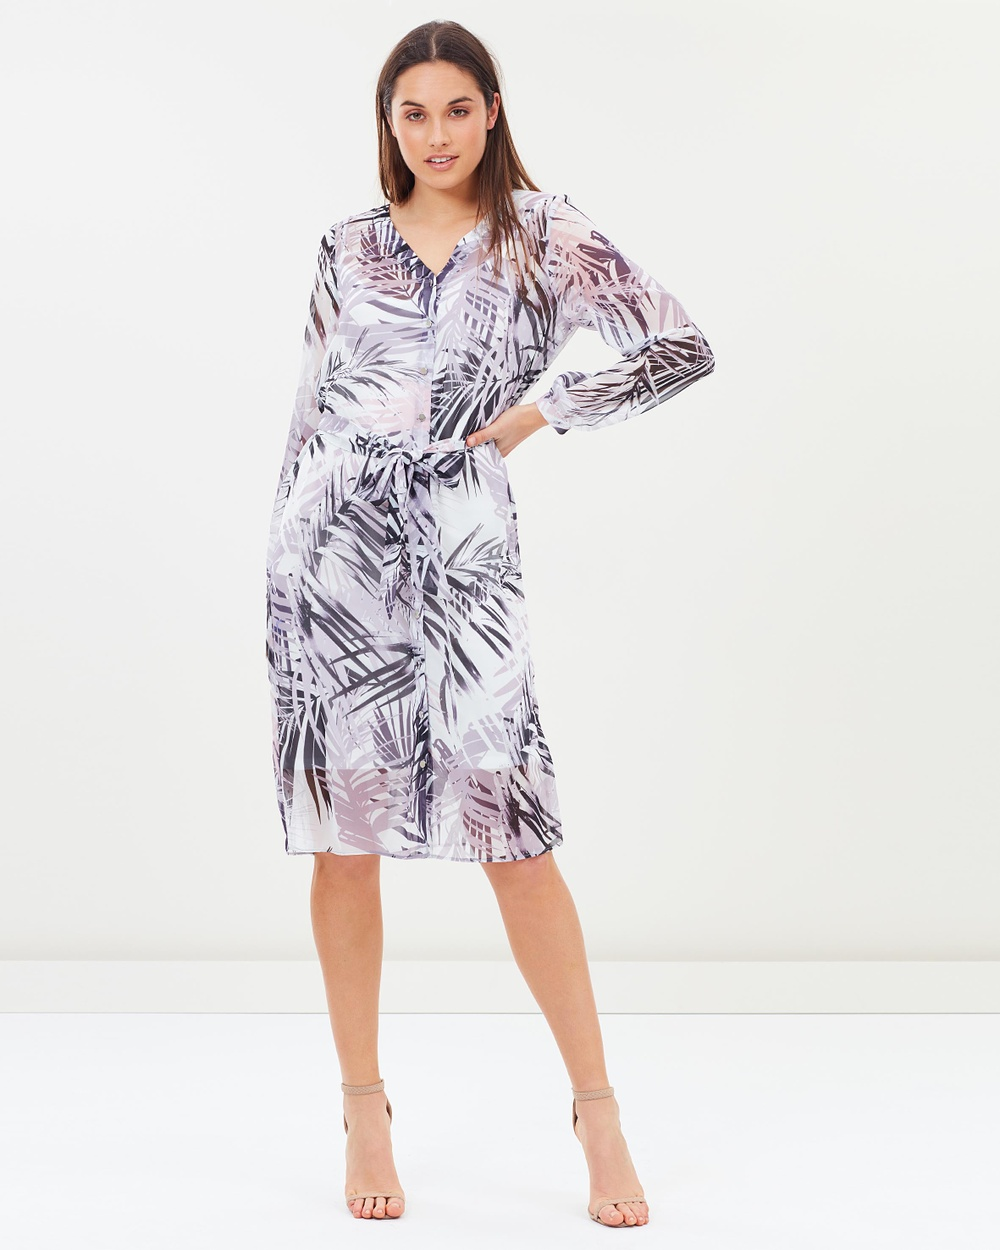 Photo of Wallis Wallis Posh Palm Shirt Dress Dresses Pink Posh Palm Shirt Dress - For on-trend womenswear with a classic twist, look to British fashion label Wallis. The Wallis woman is confident, fashionable and thoughtful in her approach to personal style. The label creates clothing to match a modern, 24/7 lifestyle, with feminine, chic designs that can take you from office to evening and weekend with ease. Our model is wearing a size UK 8 dress. She is 176.5cm (